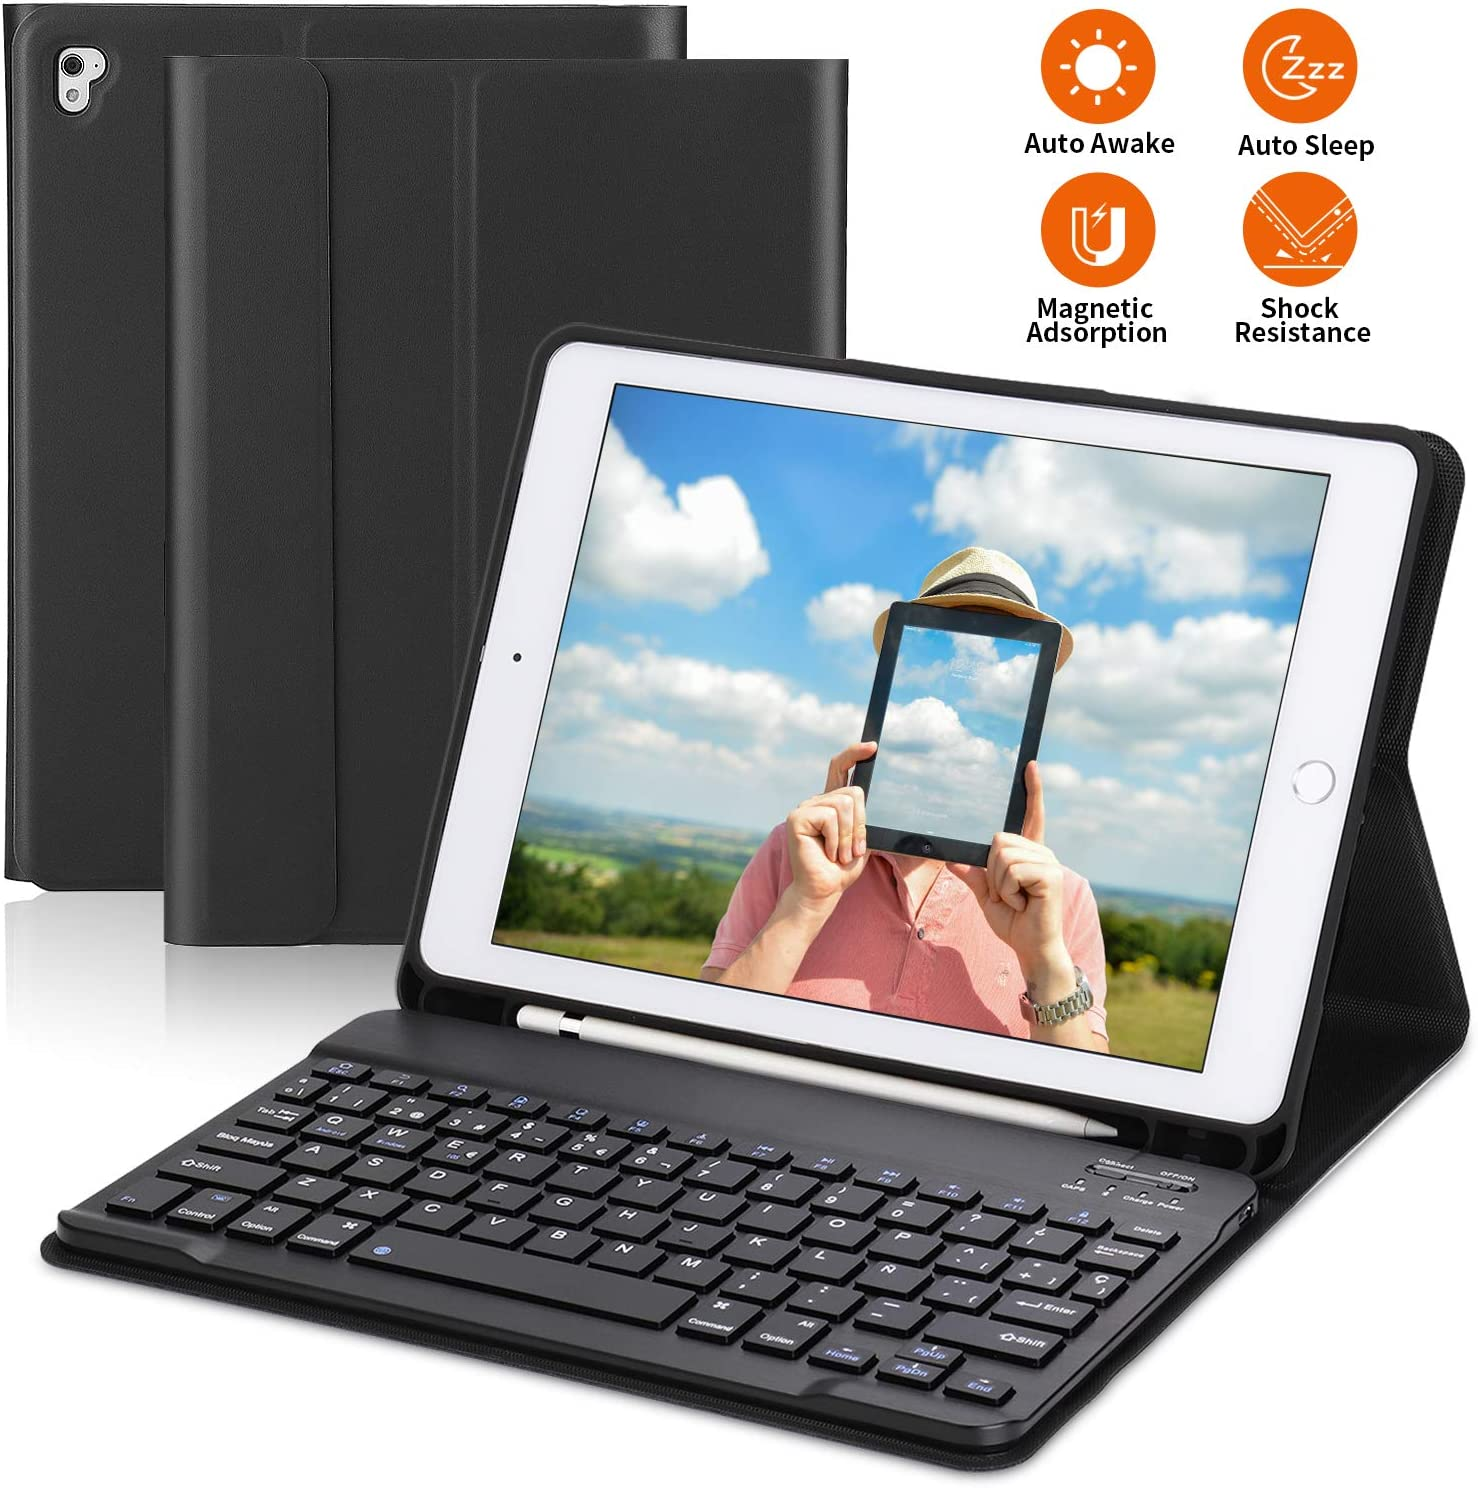 PEYOU Teclado para iPad 2018, Funda con Teclado Español Bluetooth Inalámbrico, para iPad 9.7/Pro 9,7/Air 2/1/2018 (6th Gen)/ 2017, con Ranura para Apple Pencil, Smart Auto Sleep-Wake, Desmontable